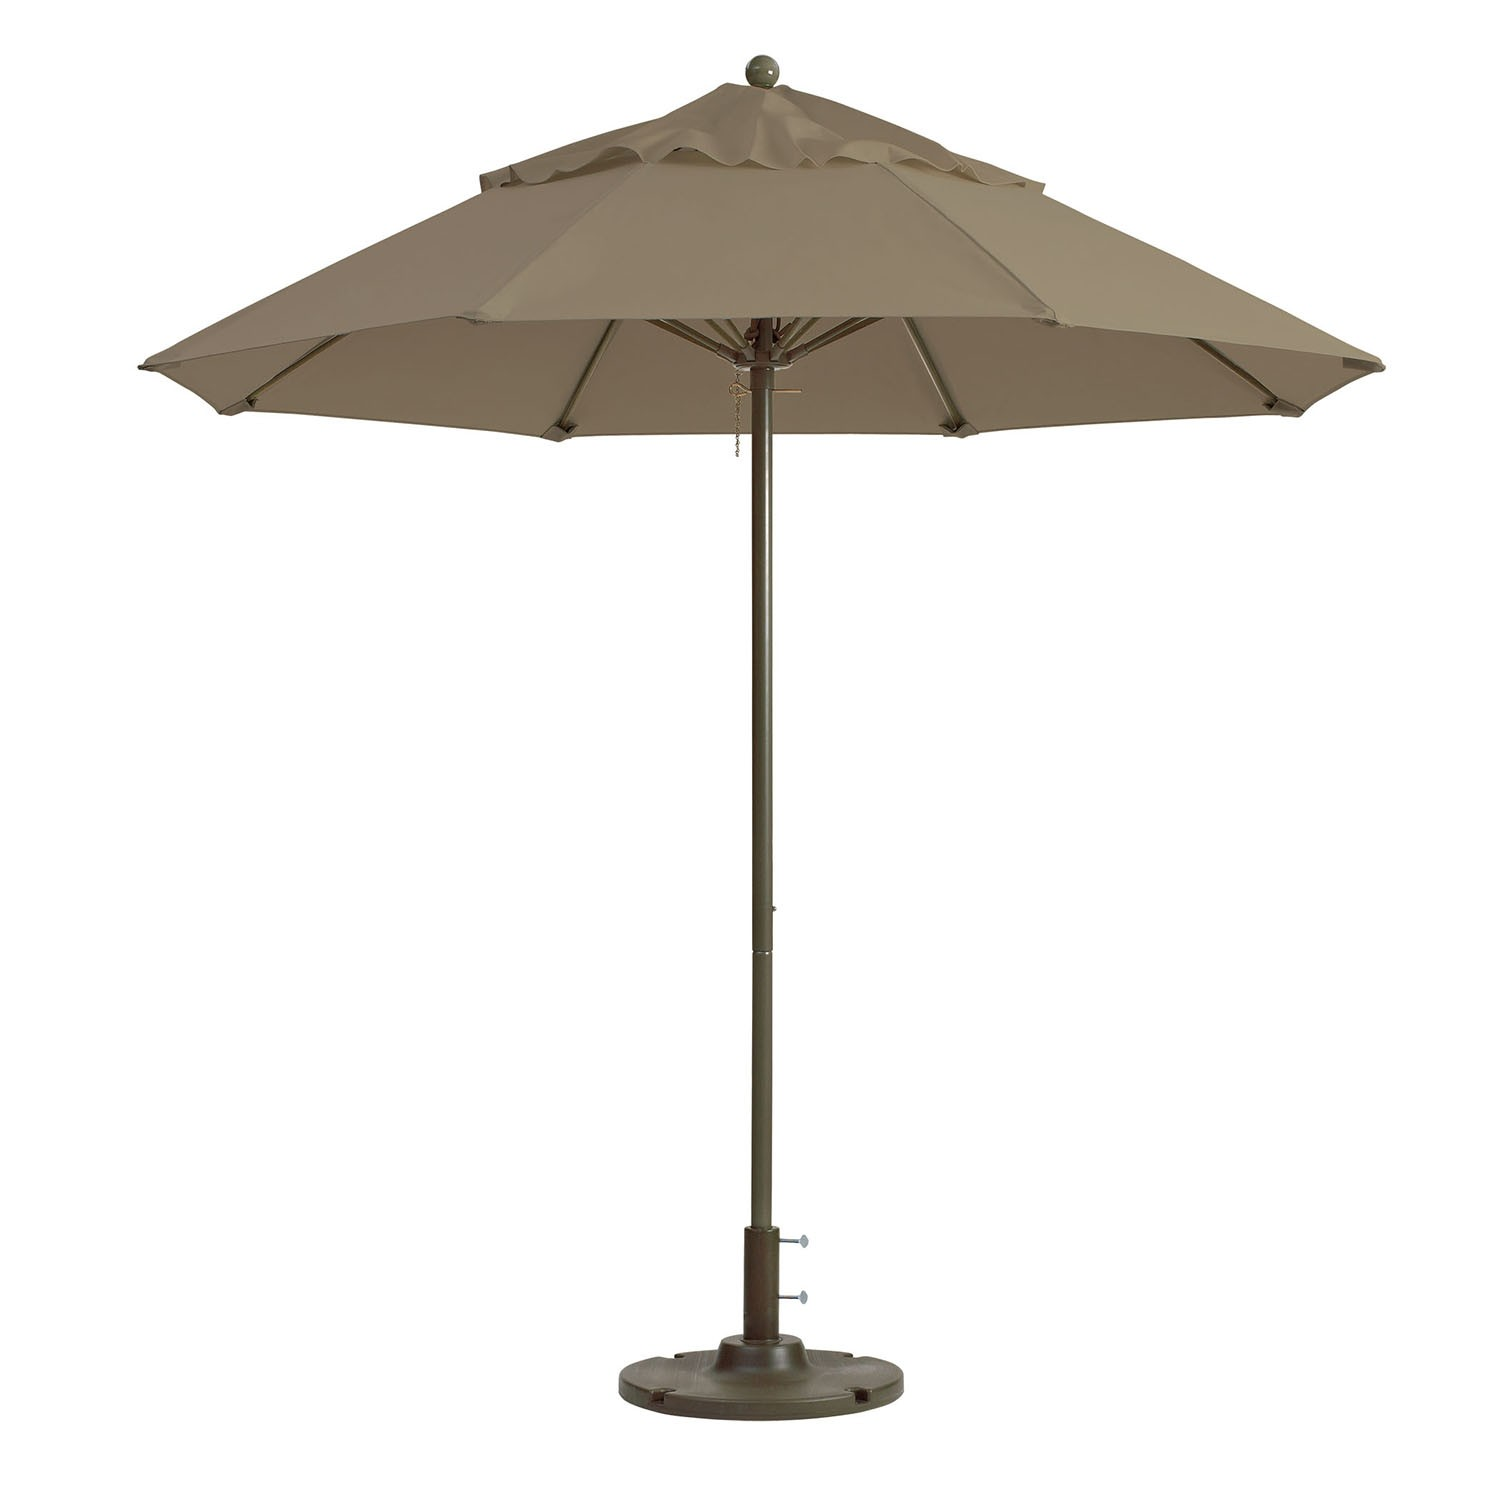 7.5ft Windmaster Fiberglass Umbrella, Linen